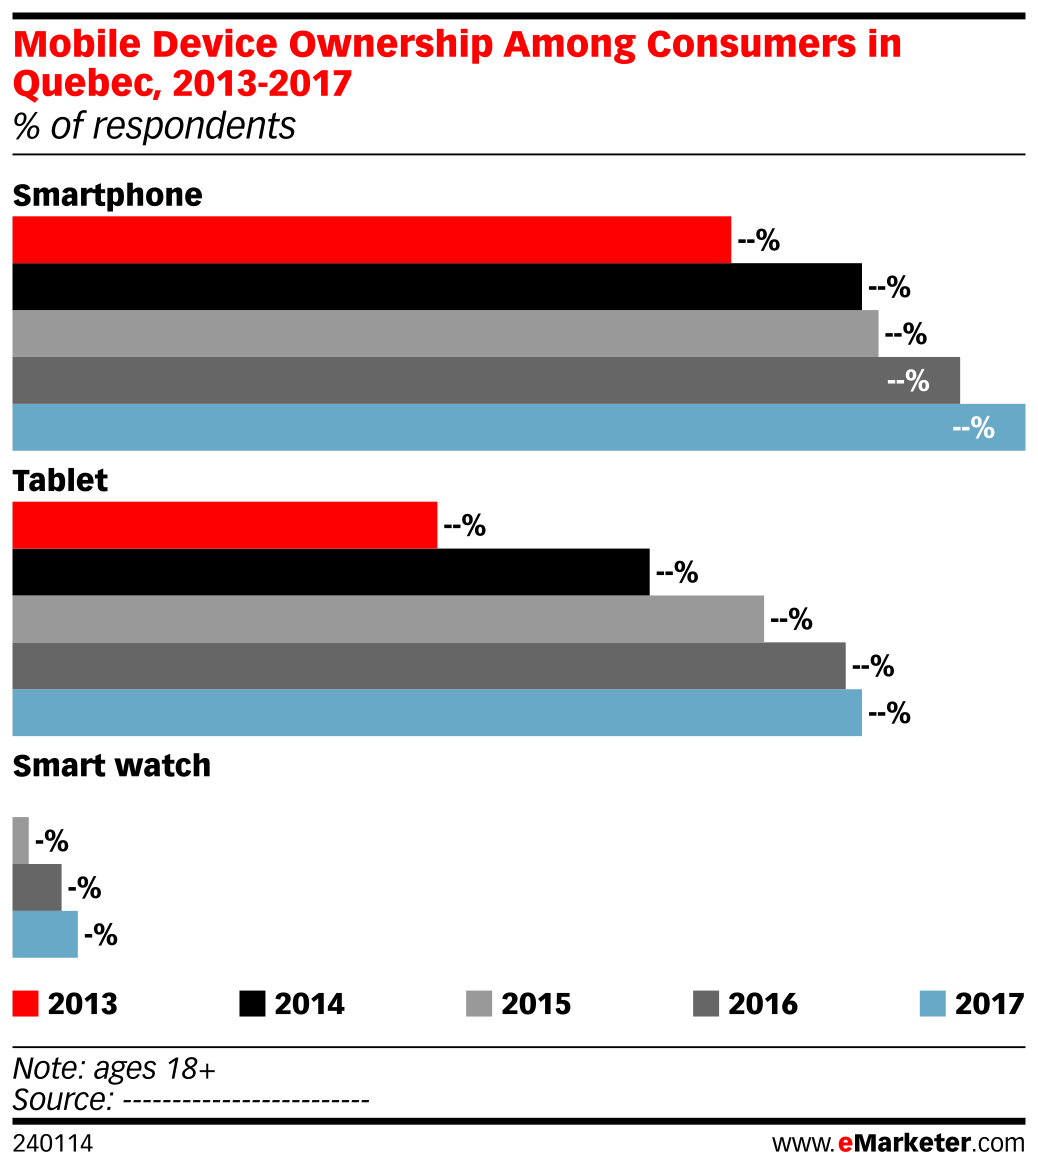 Mobile Device Ownership Among Consumers in Quebec, 2013-2017 (% of respondents)